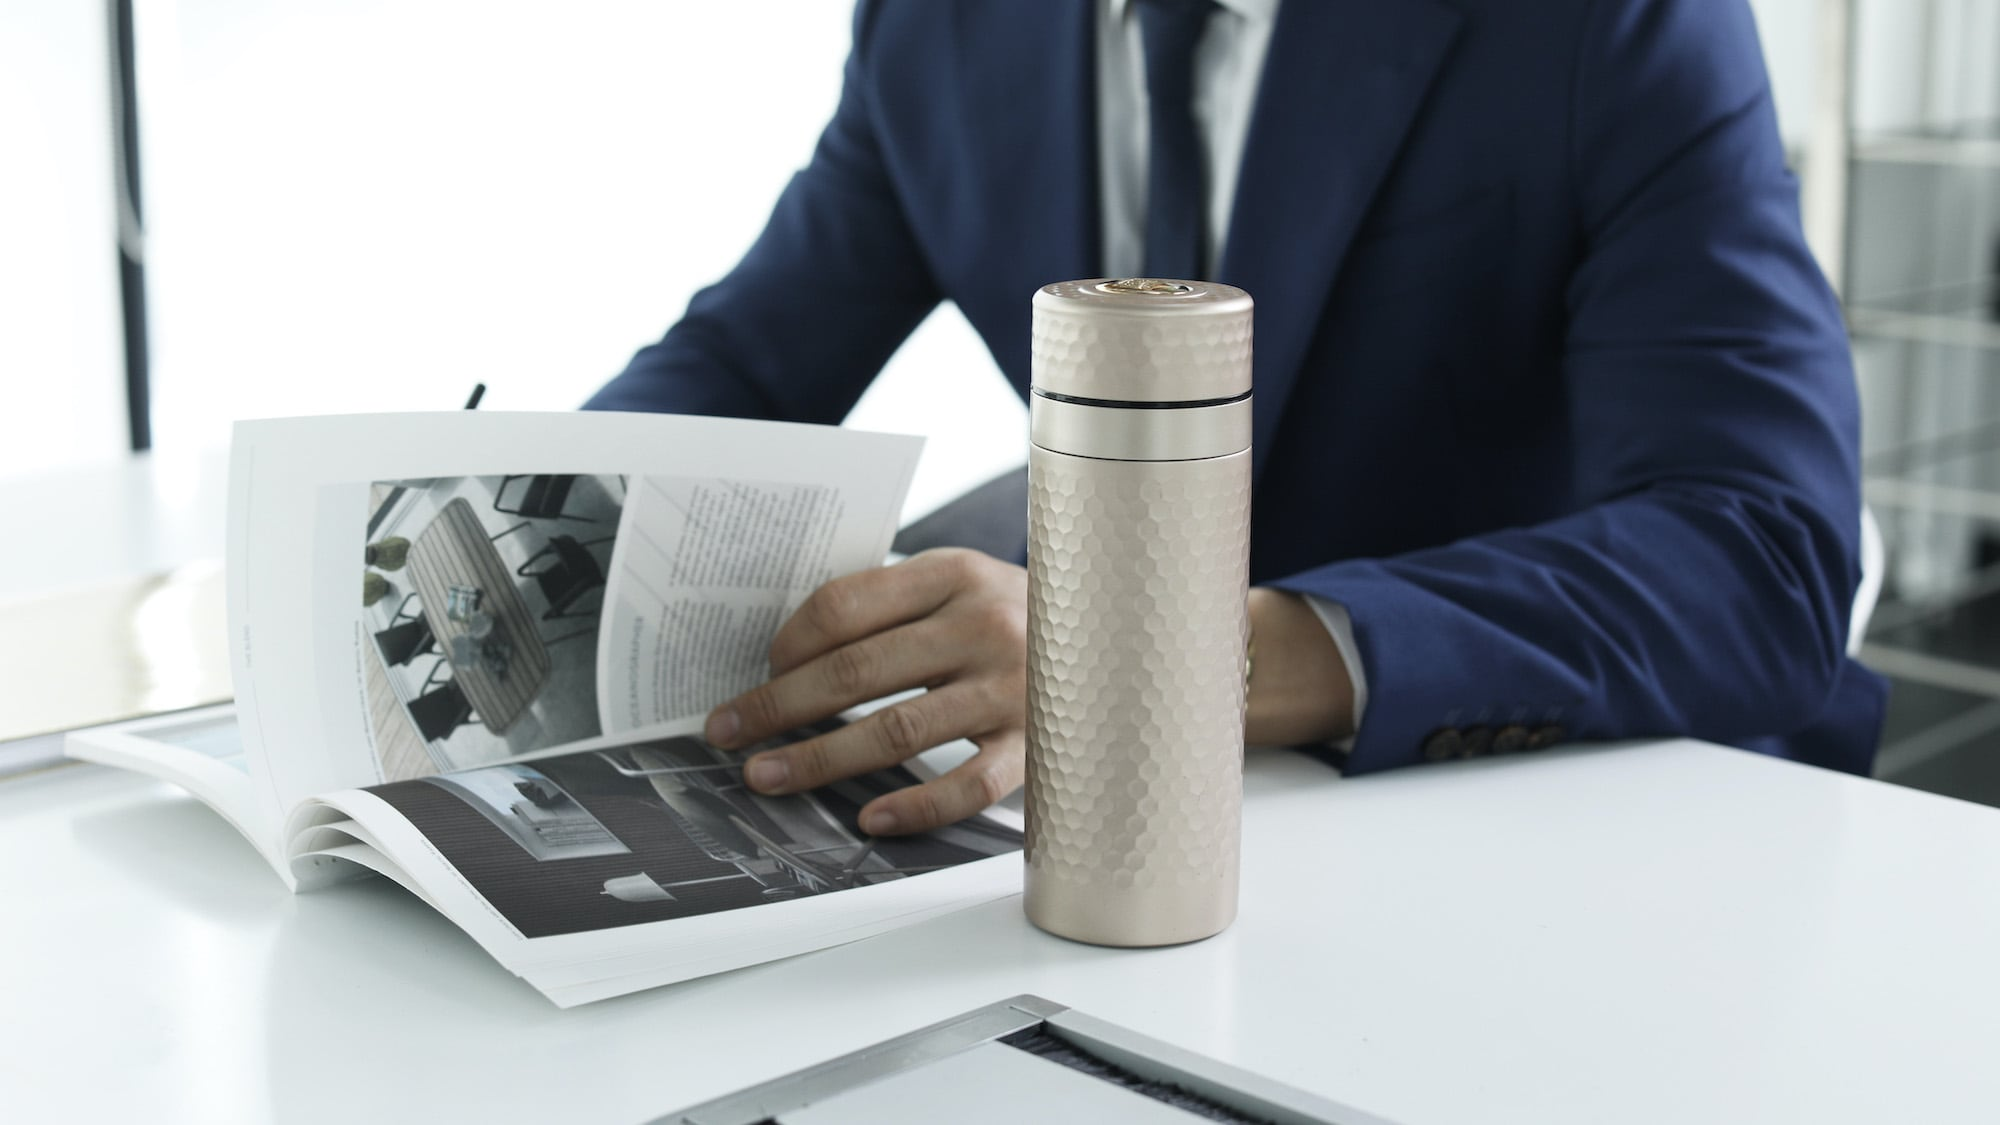 Acera Harmony Collection advanced travel mugs have stainless steel & ceramic layers